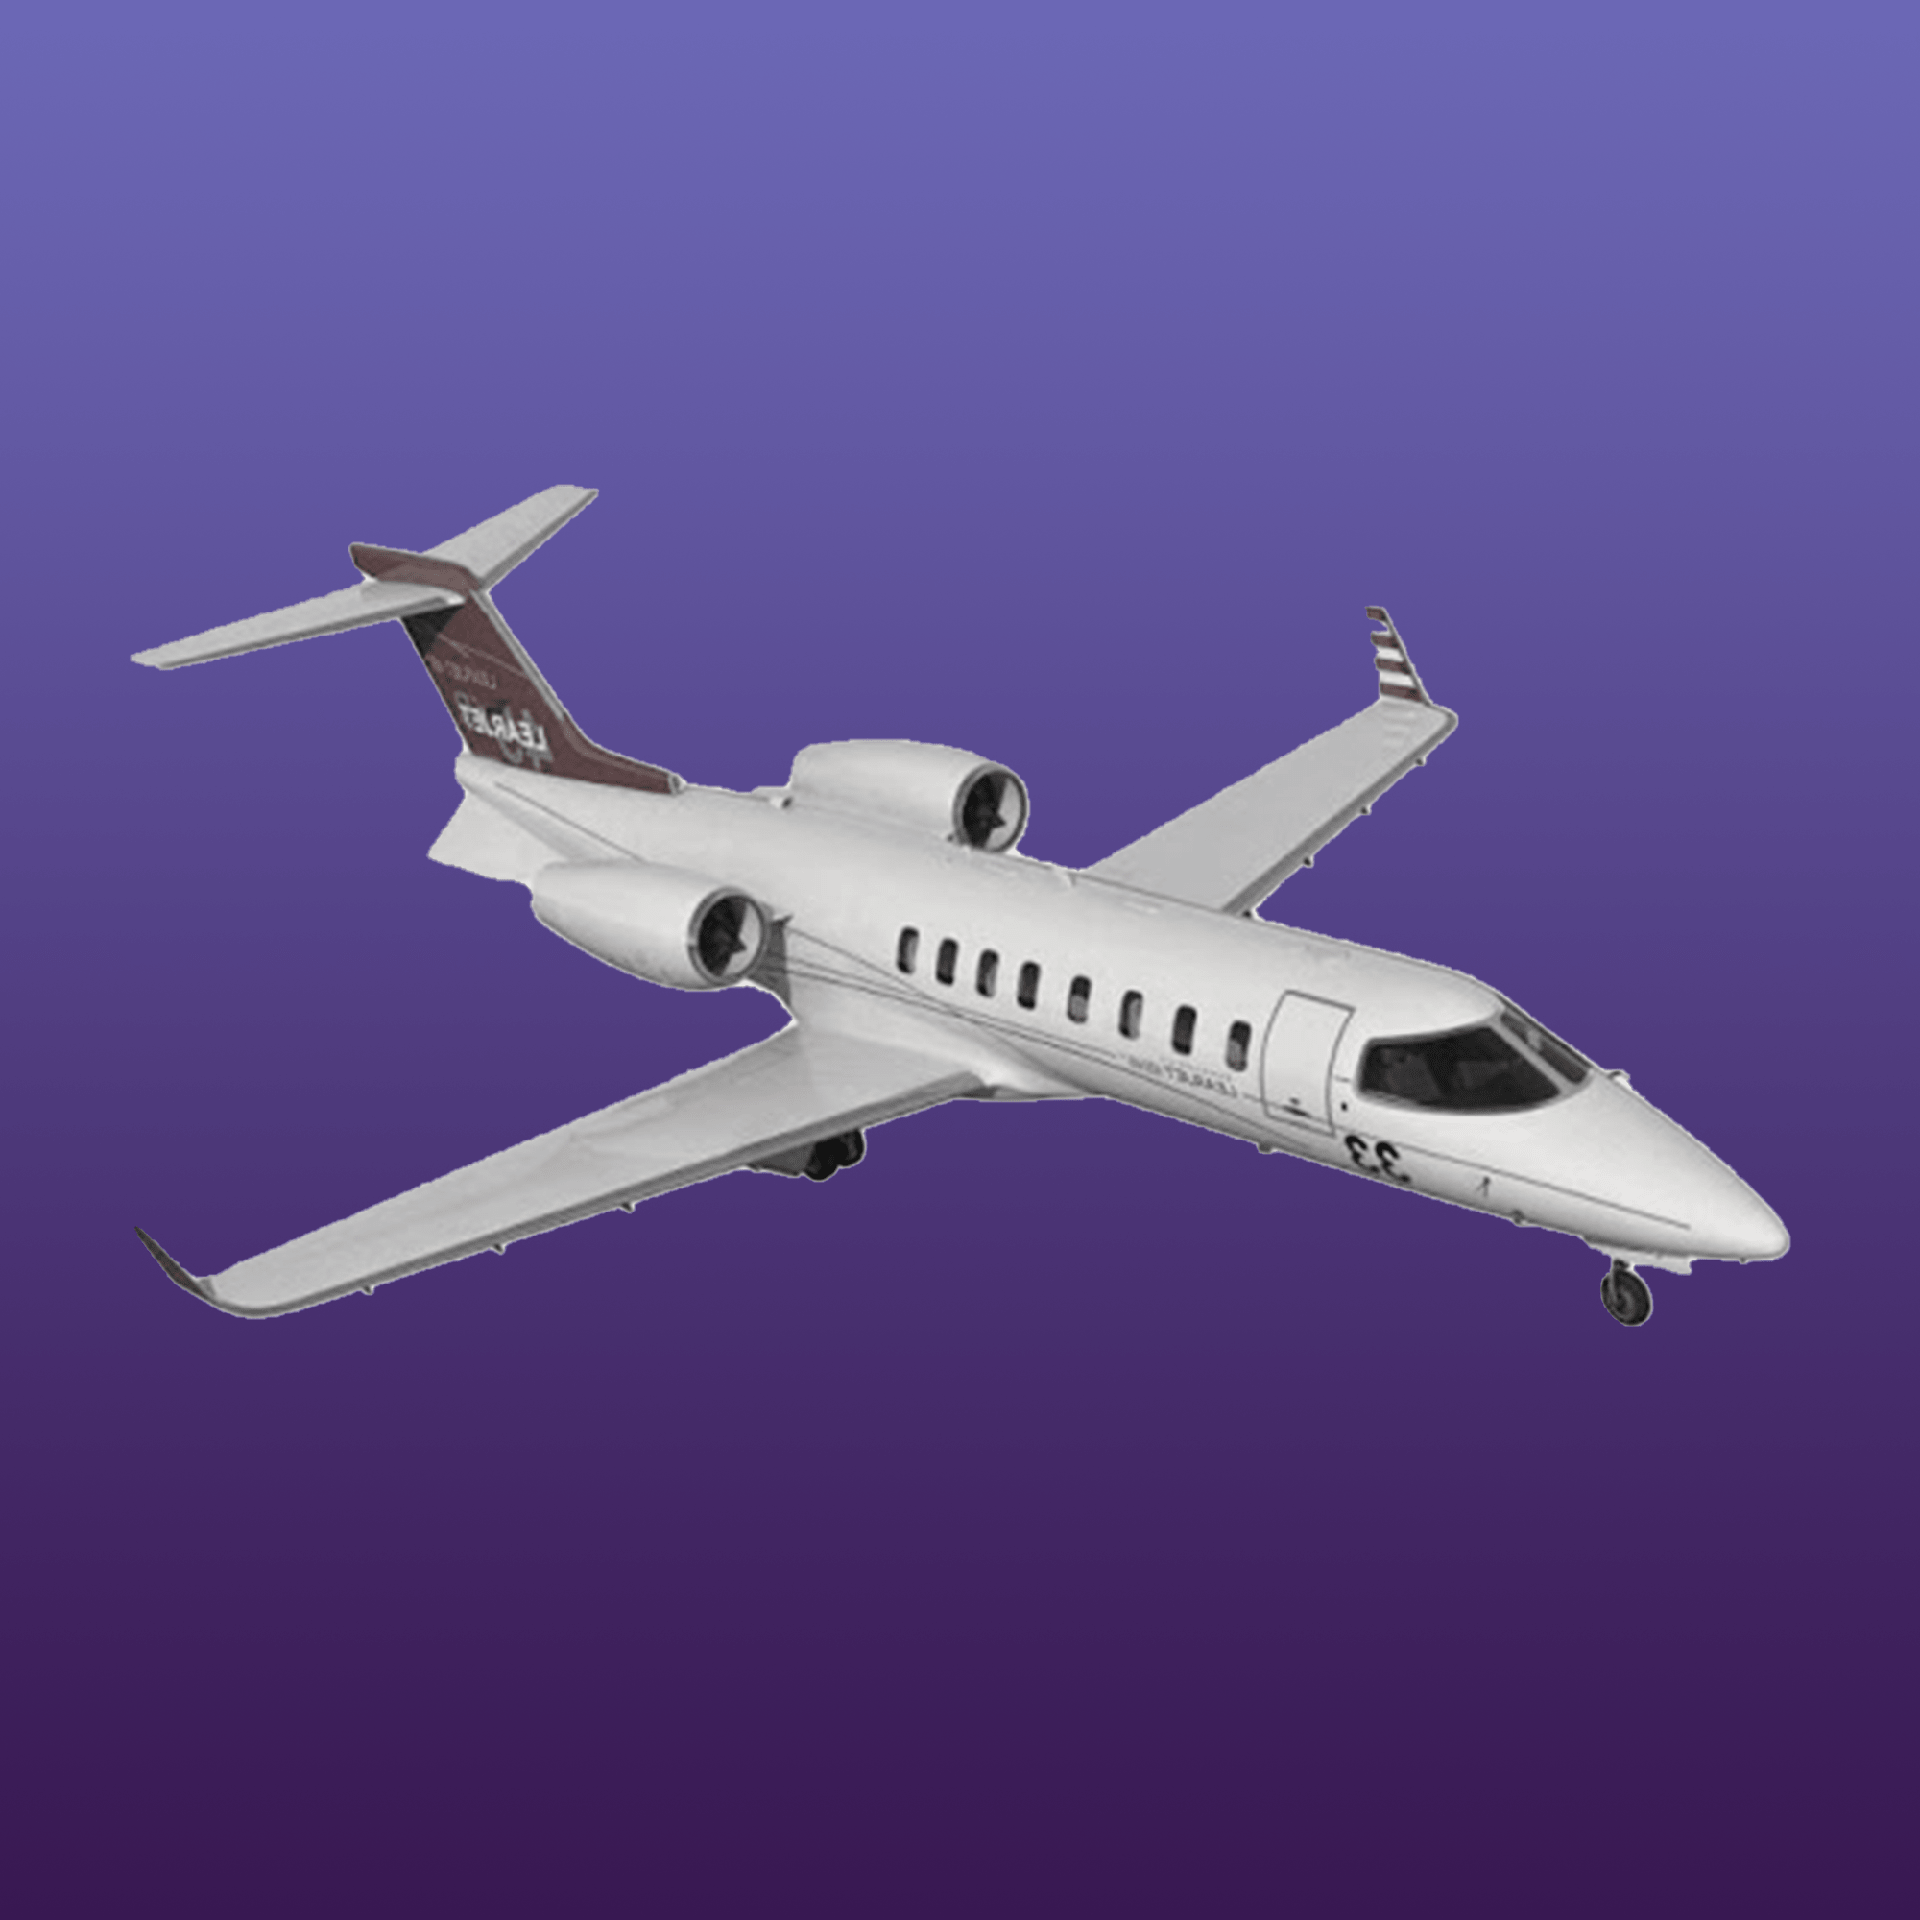 Picture of a Learjet